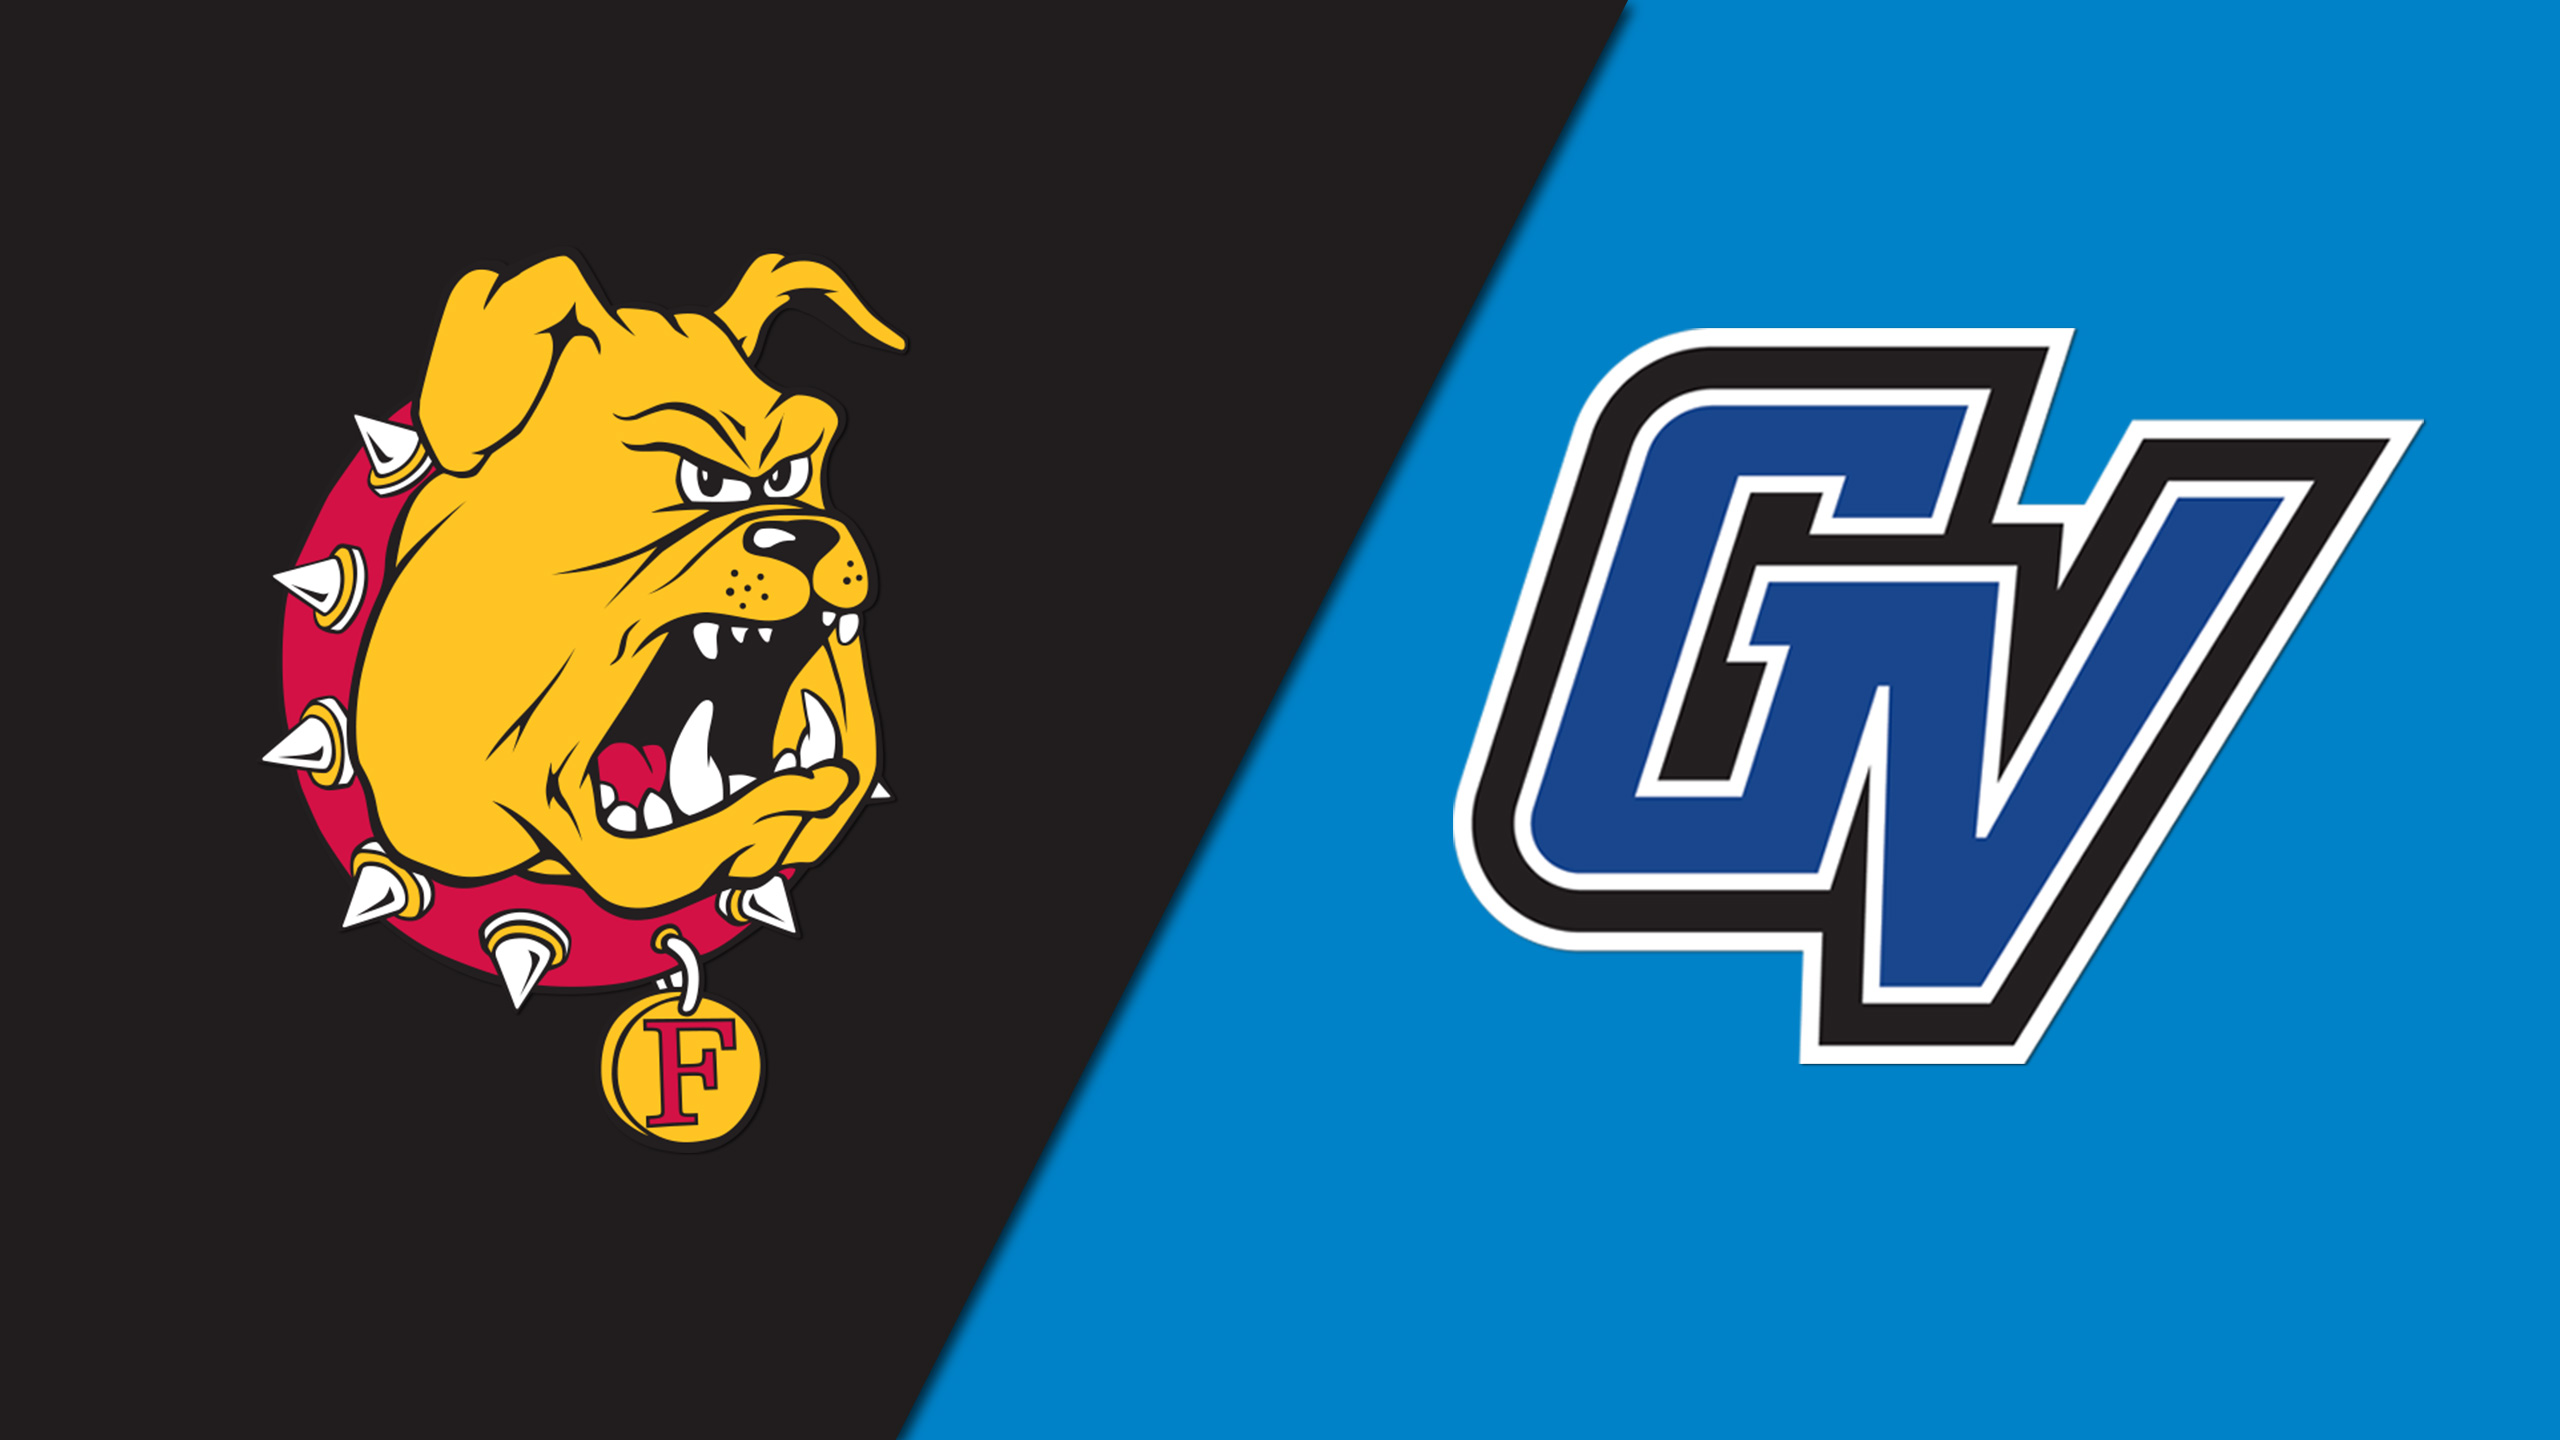 Ferris State (MI) vs. Grand Valley State (Football)